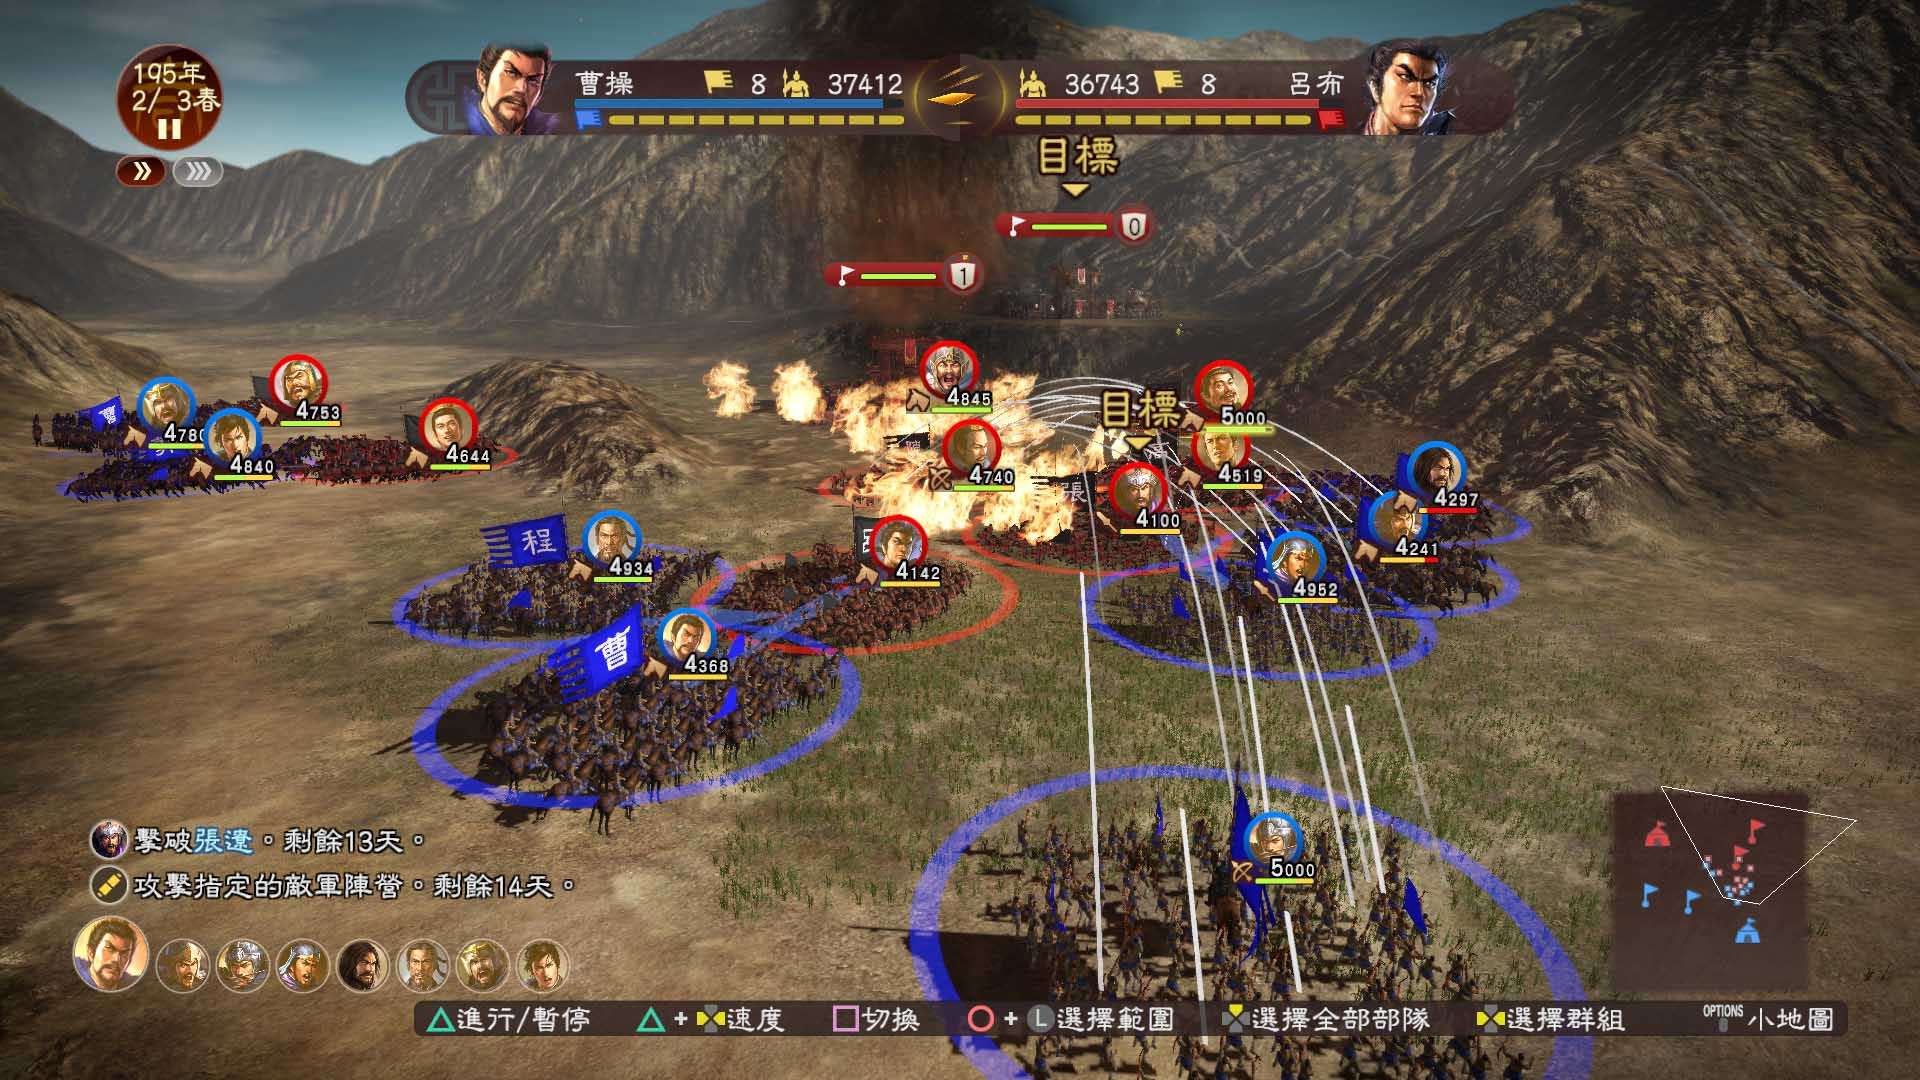 Download Romance Of The Three Kingdoms XIV v1.0.20-P2P in PC [ Torrent ]